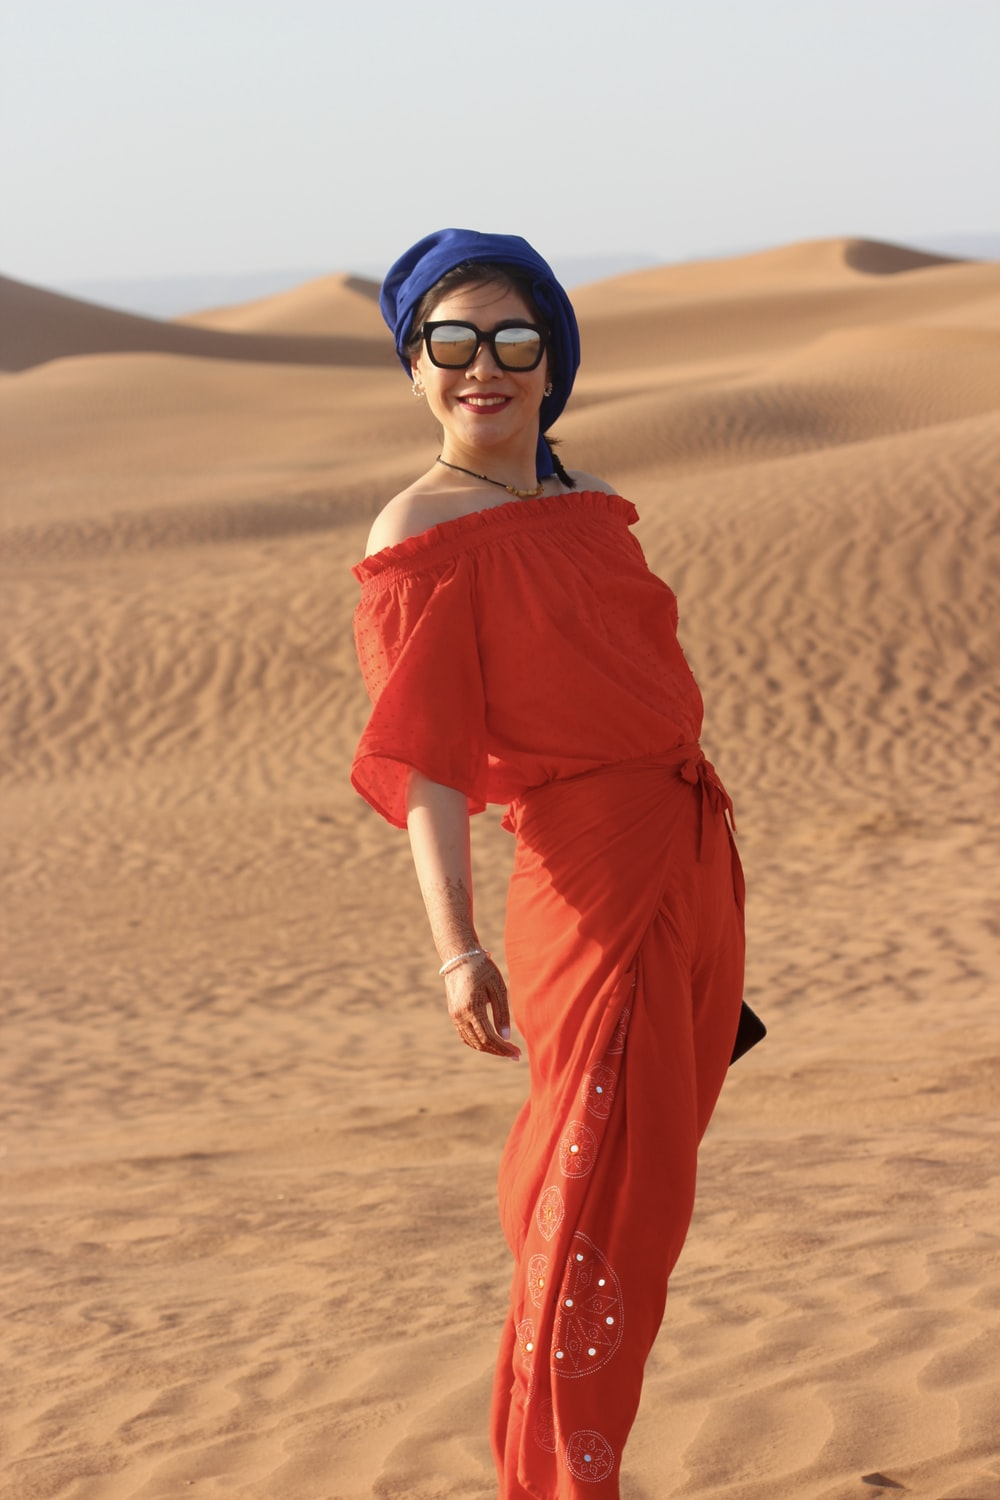 standing woman in red dress at sand dunes during daytime